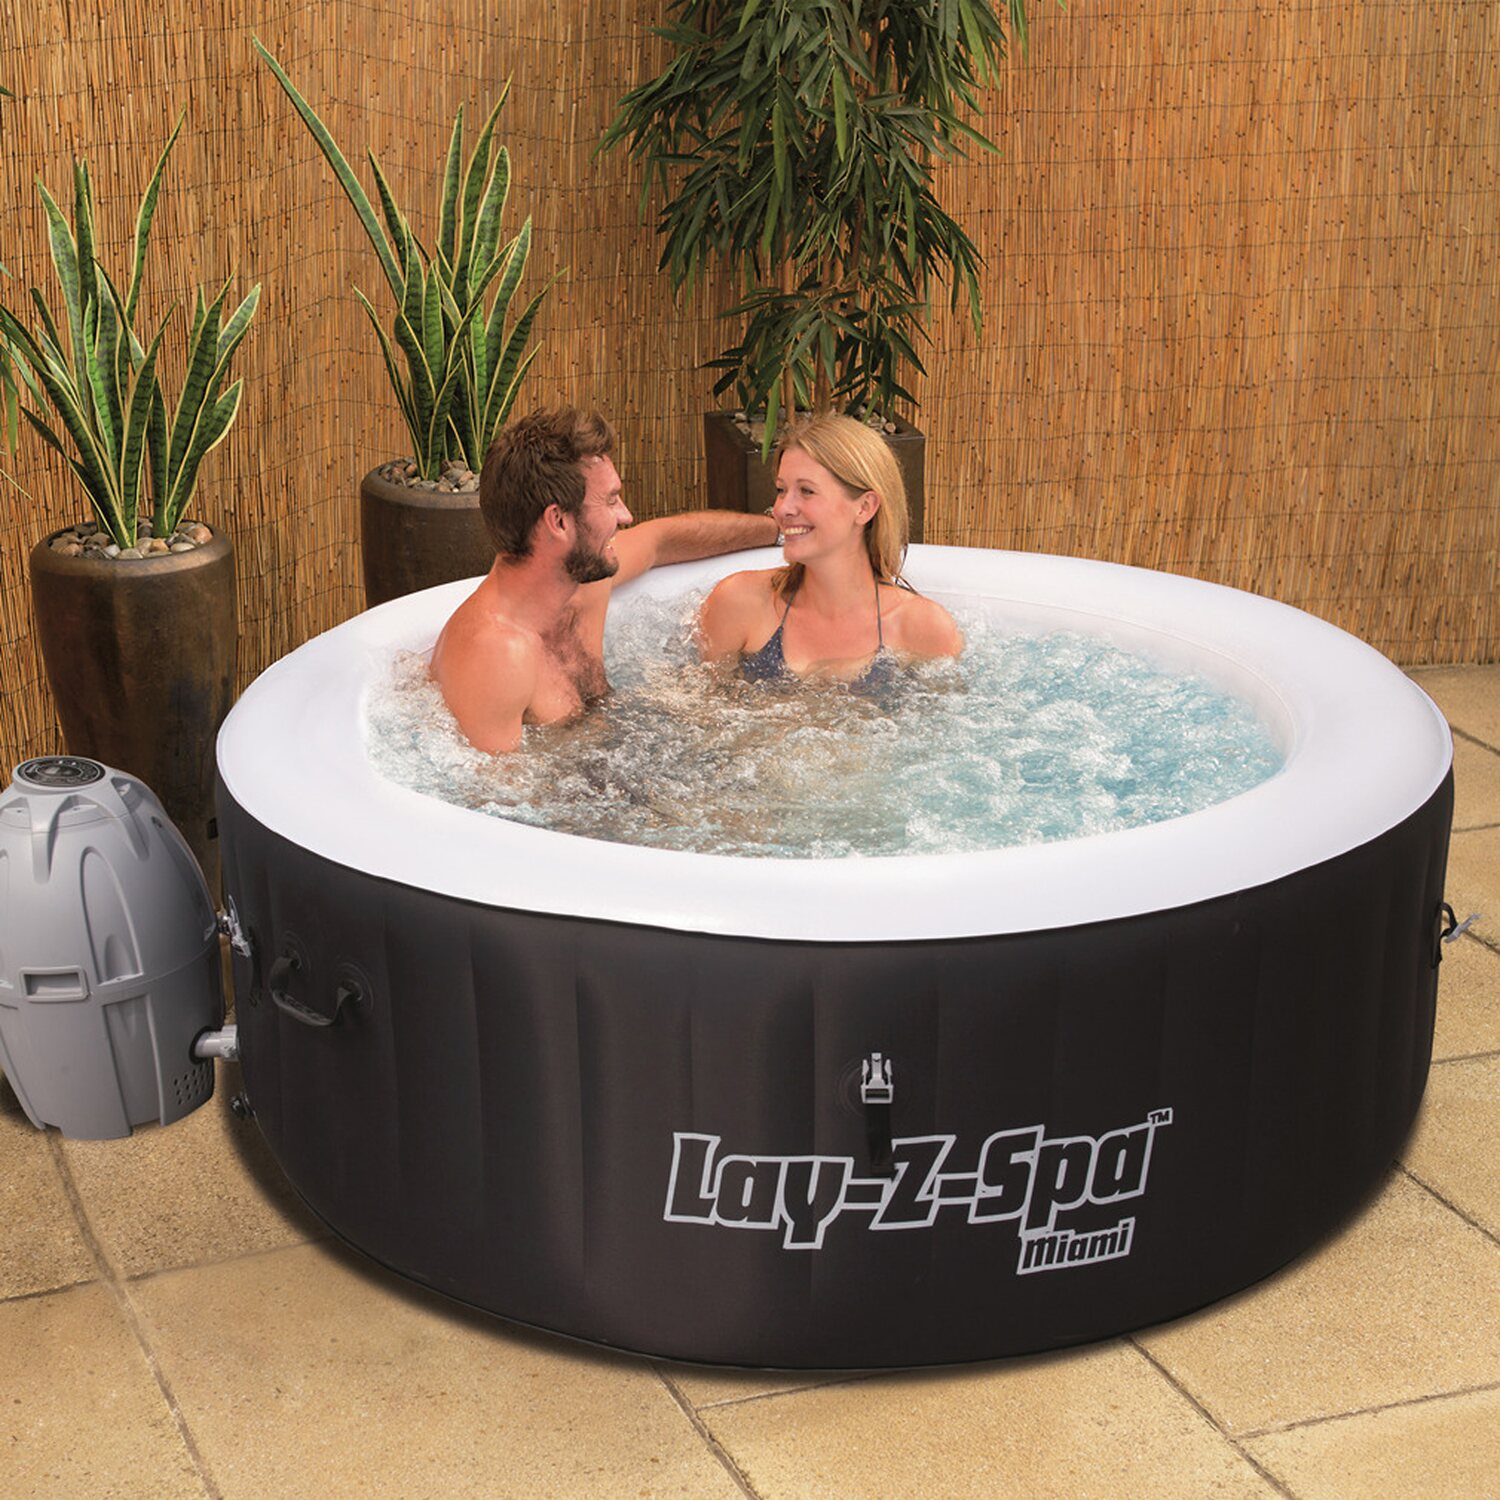 Bestway whirl pool lay z spa whirlpool miami kaufen bei obi for Bestway pool bei obi